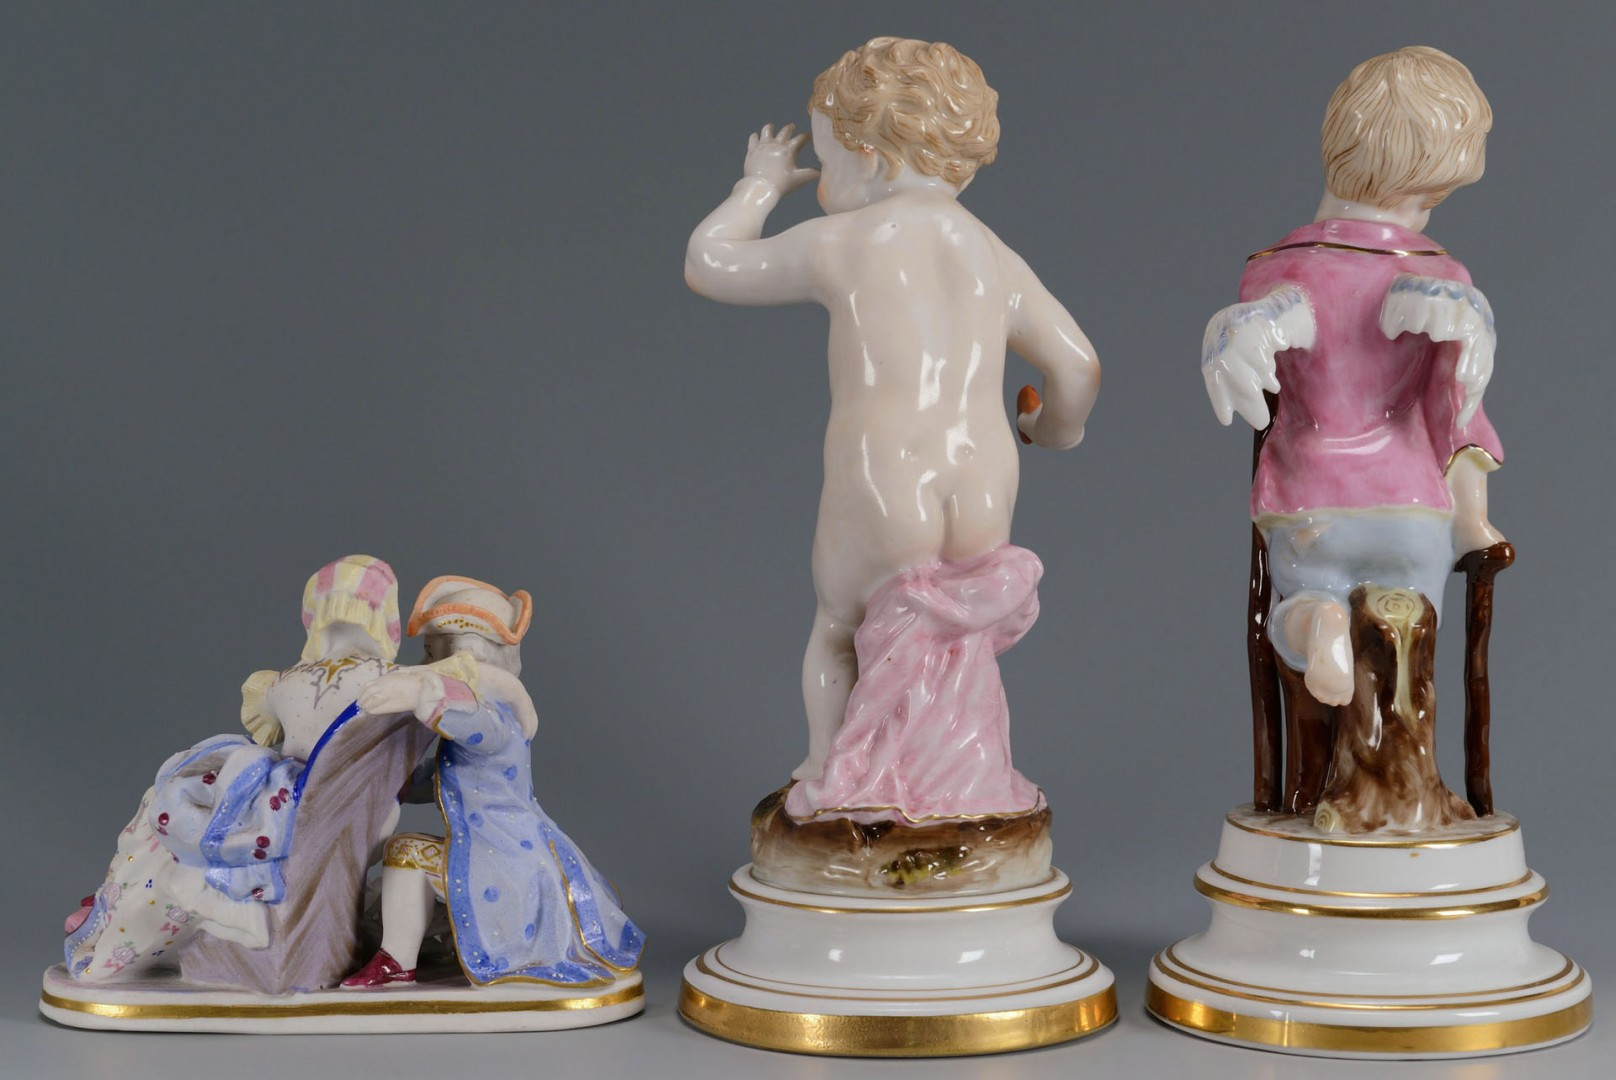 3 German Porcelain Figures